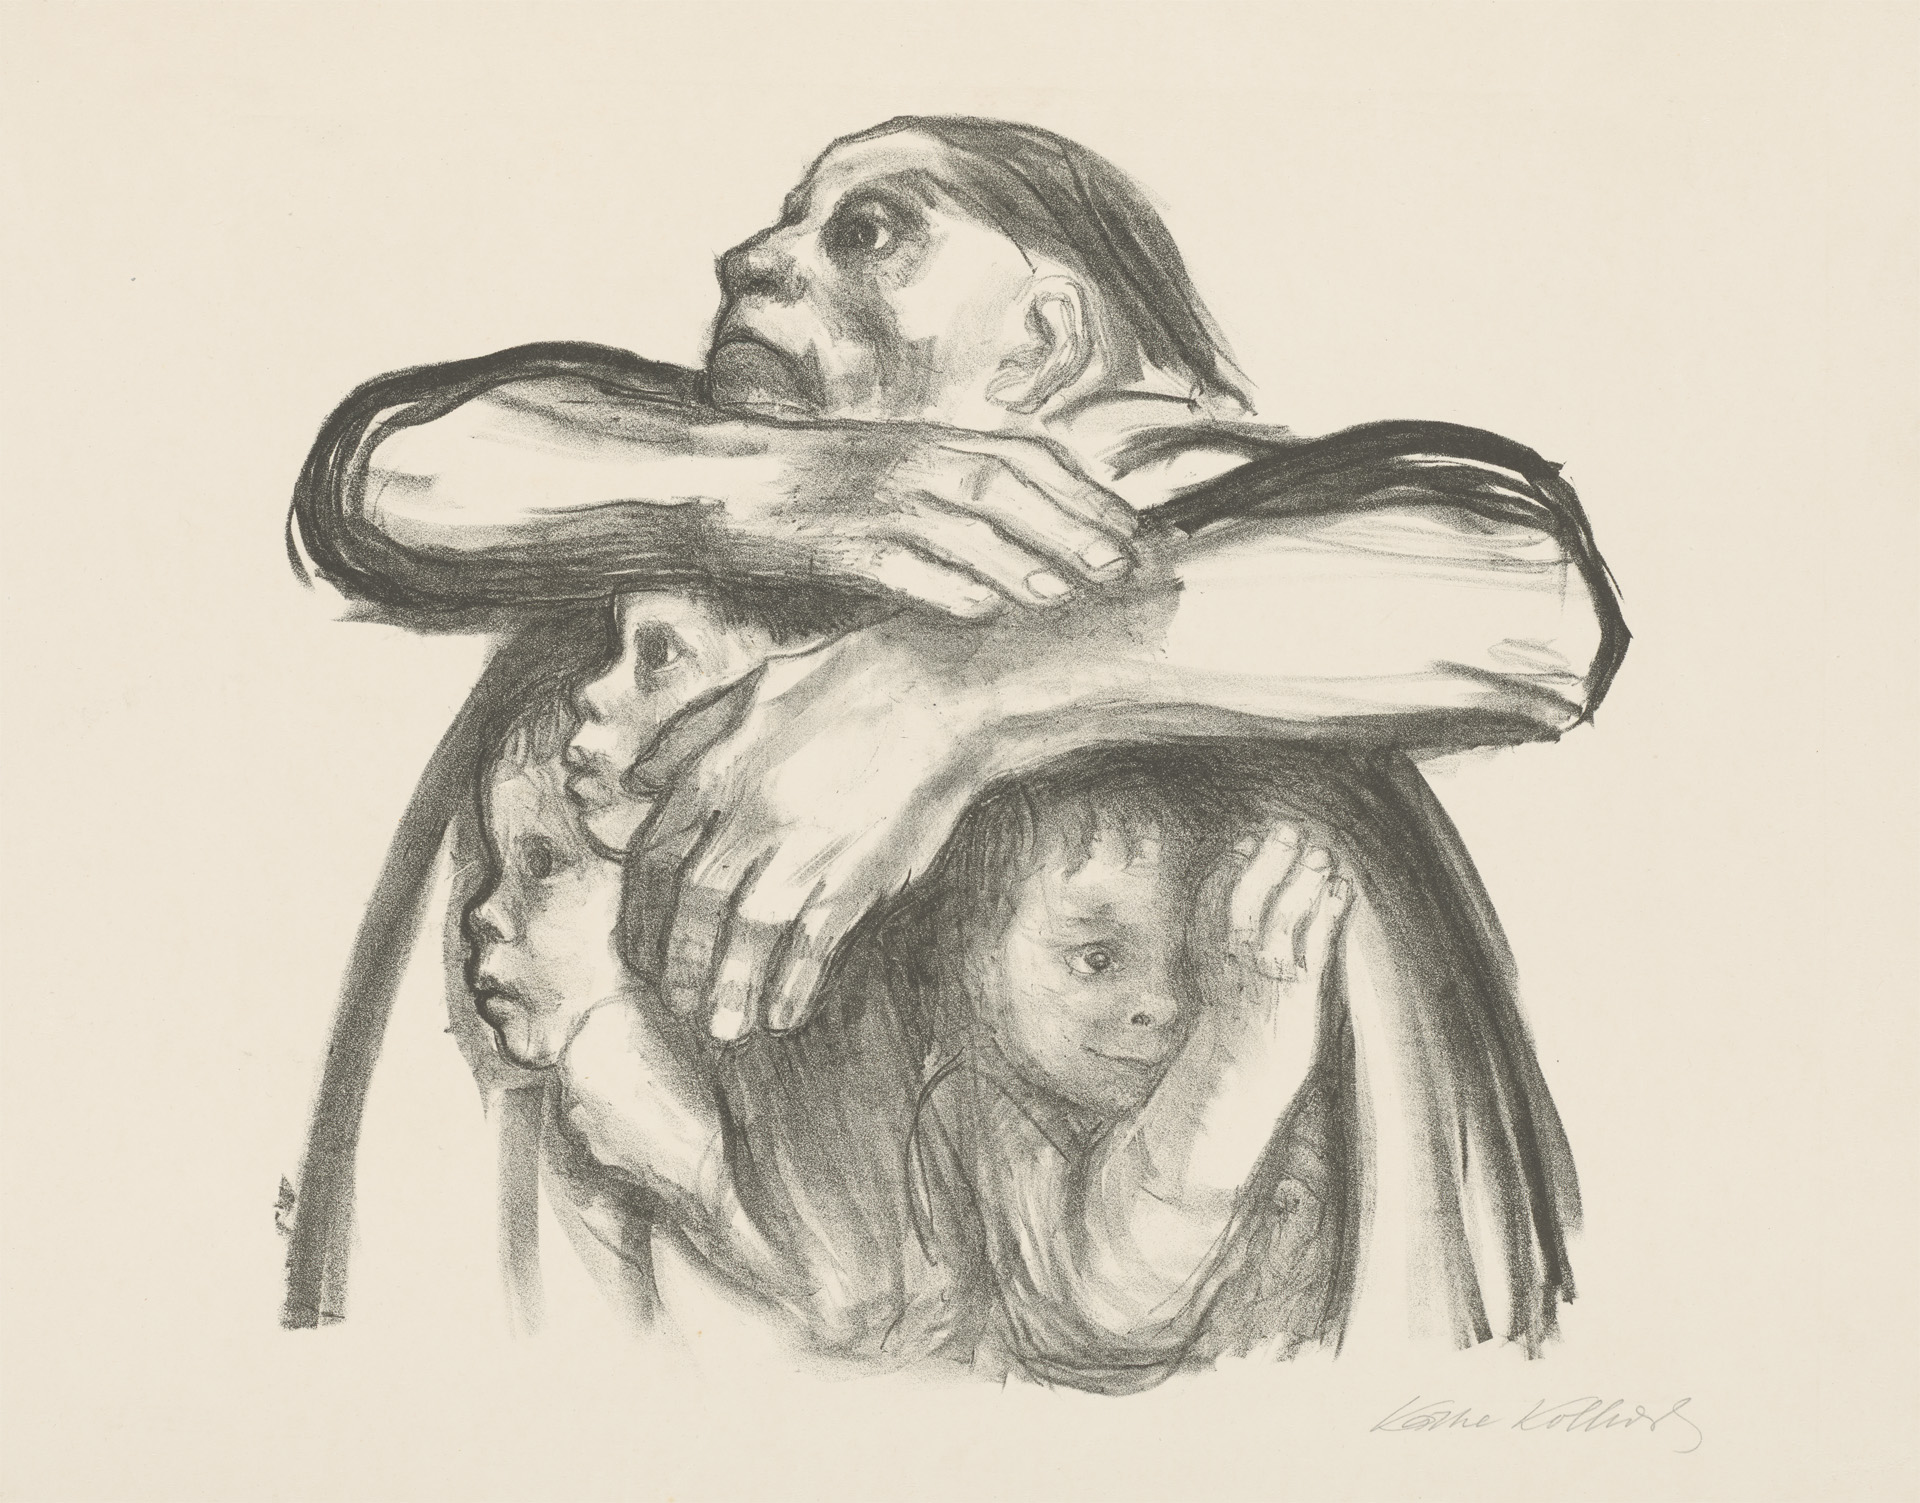 Käthe Kollwitz, »Seed for sowing should not be milled«, 1941, crayon lithograph, Kn 274, Cologne Kollwitz Collection © Käthe Kollwitz Museum Köln